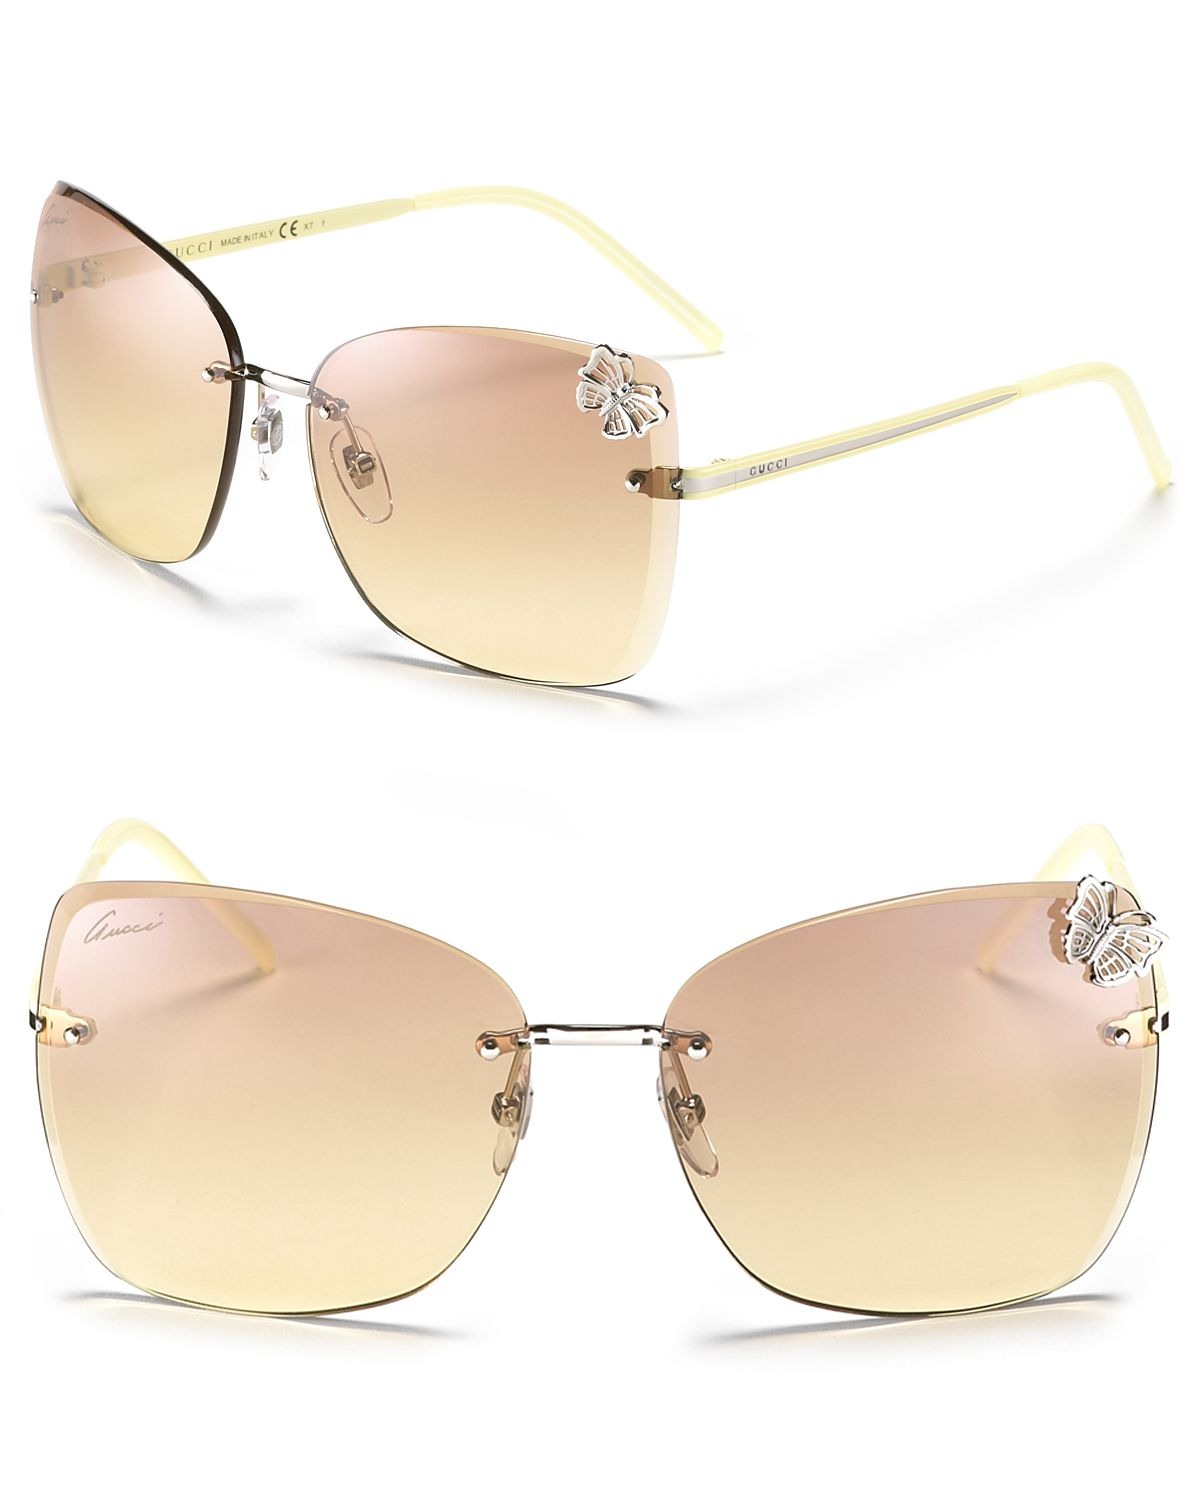 Rimless Butterfly Glasses : Gucci Oversized Rimless Butterfly Sunglasses in Metallic ...